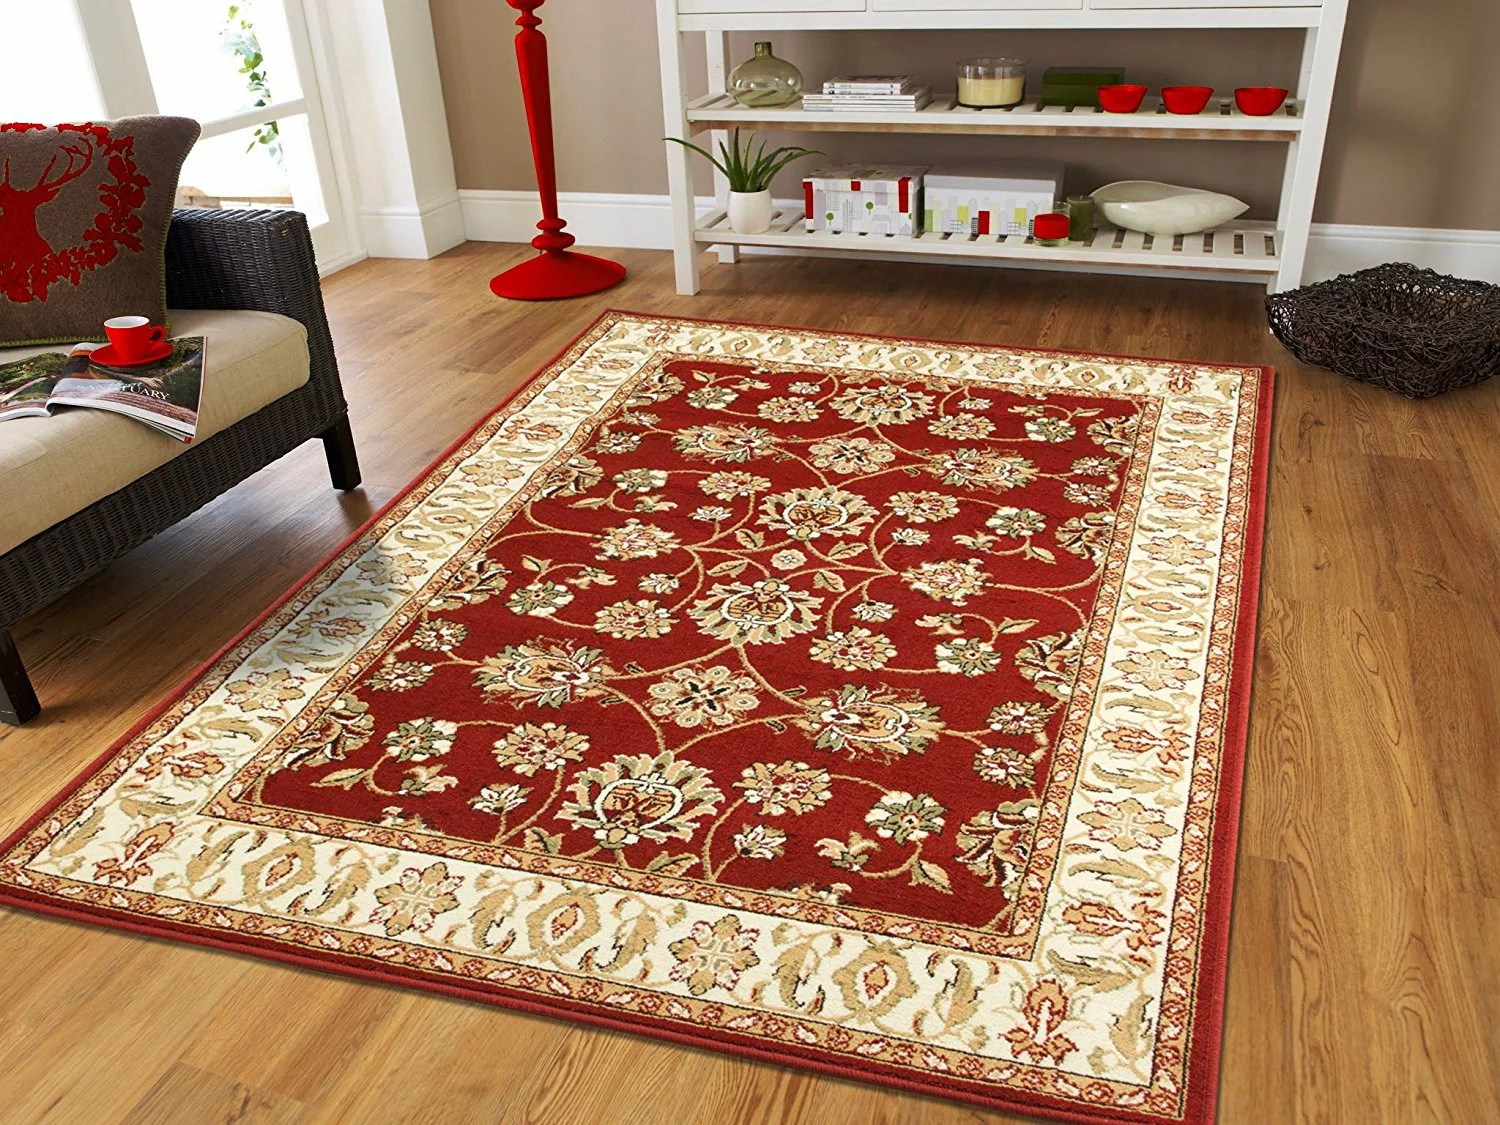 red kitchen rugs custom cabinets richmond va small for bedroom 2x3 rug living room walmart com